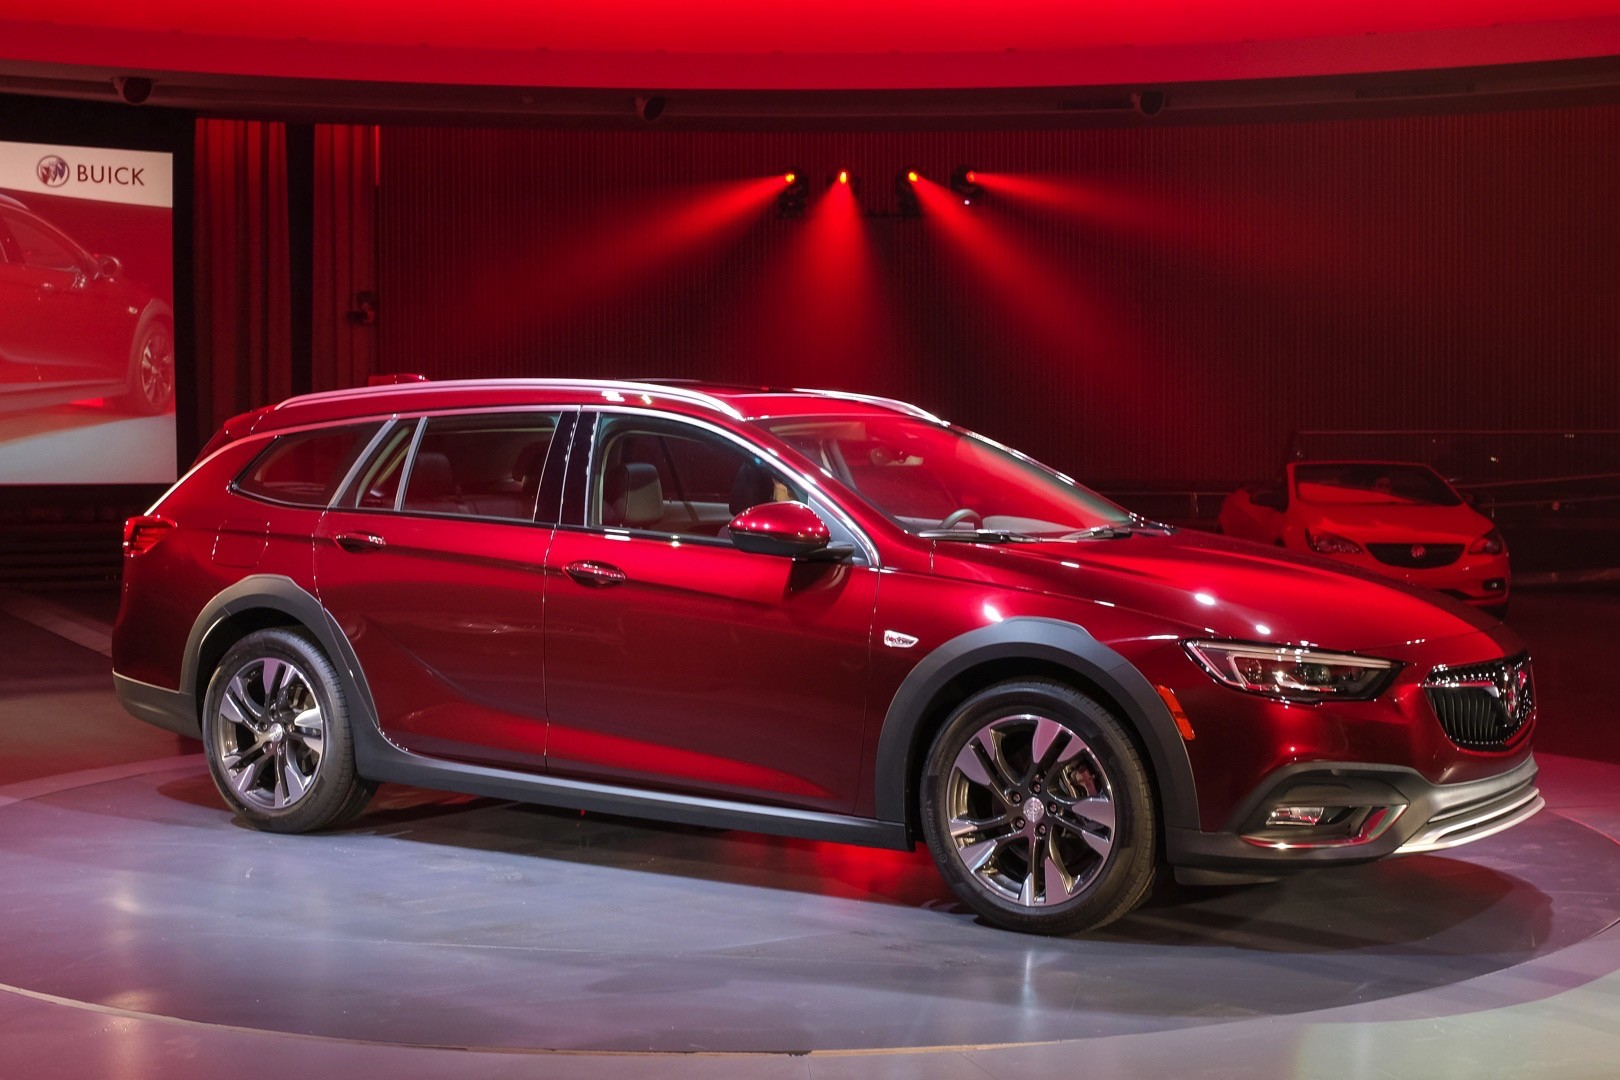 Buick Regal Gs Leak Suggests V Power And Awd